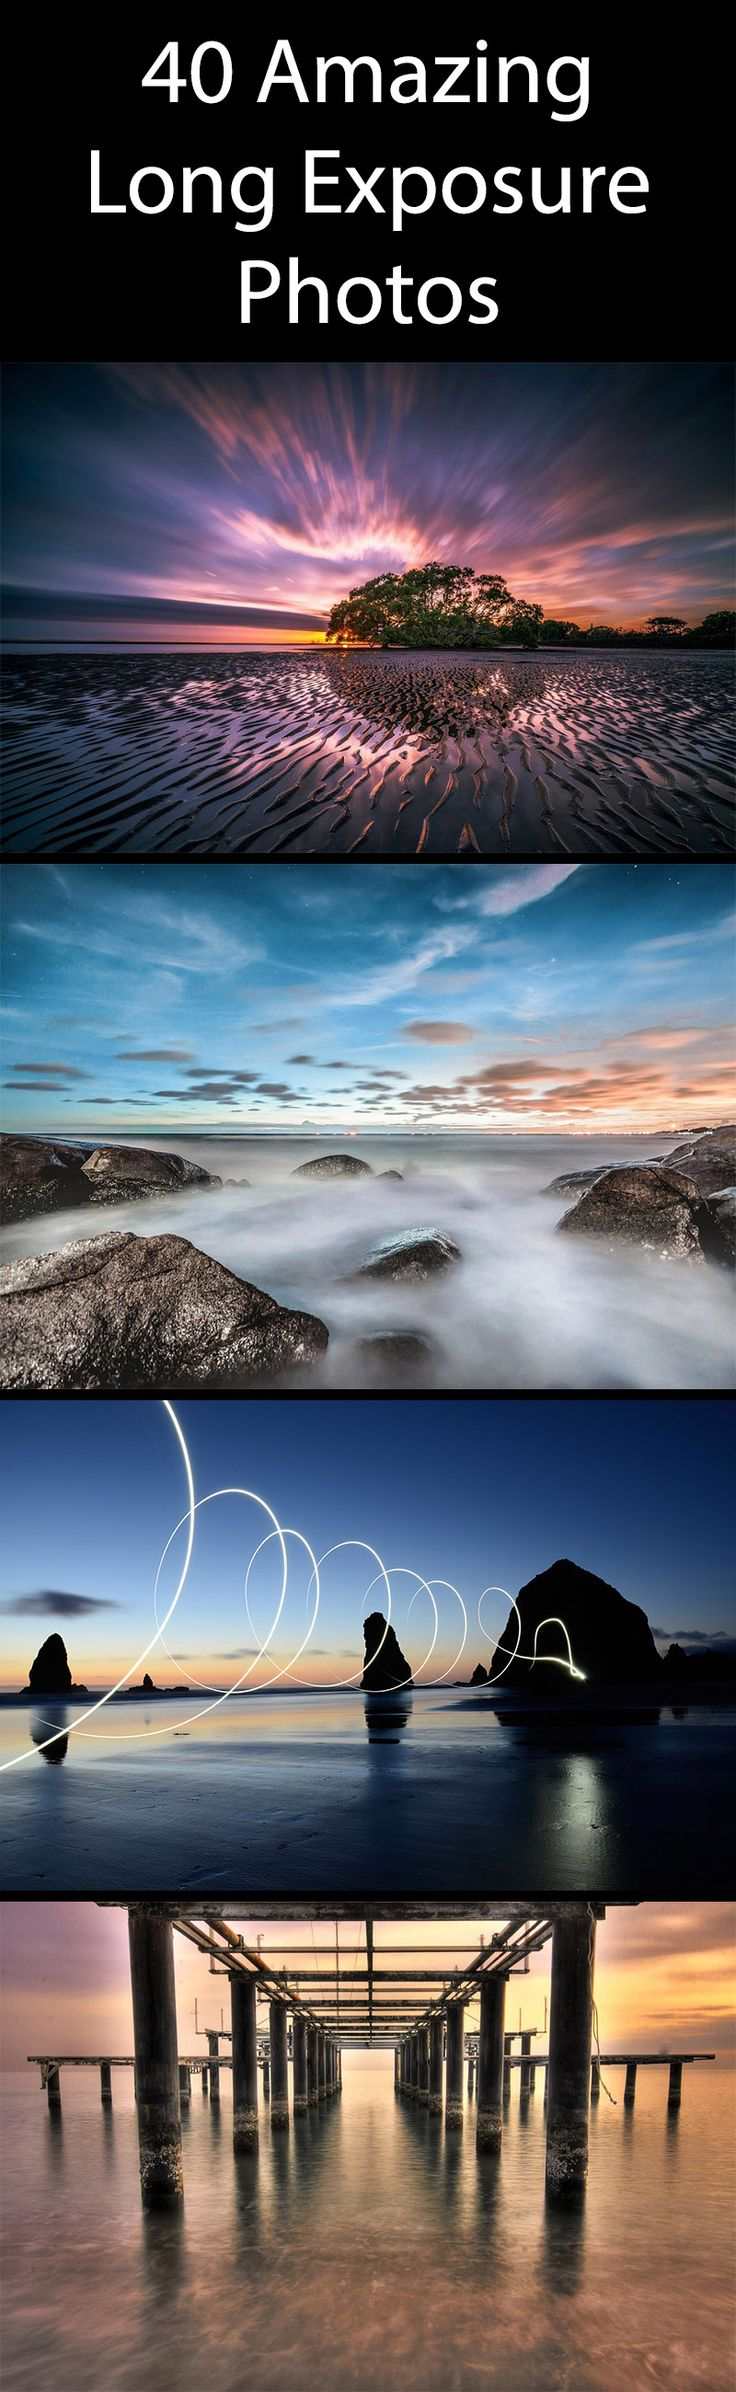 40 Amazing Long Exposure Photos